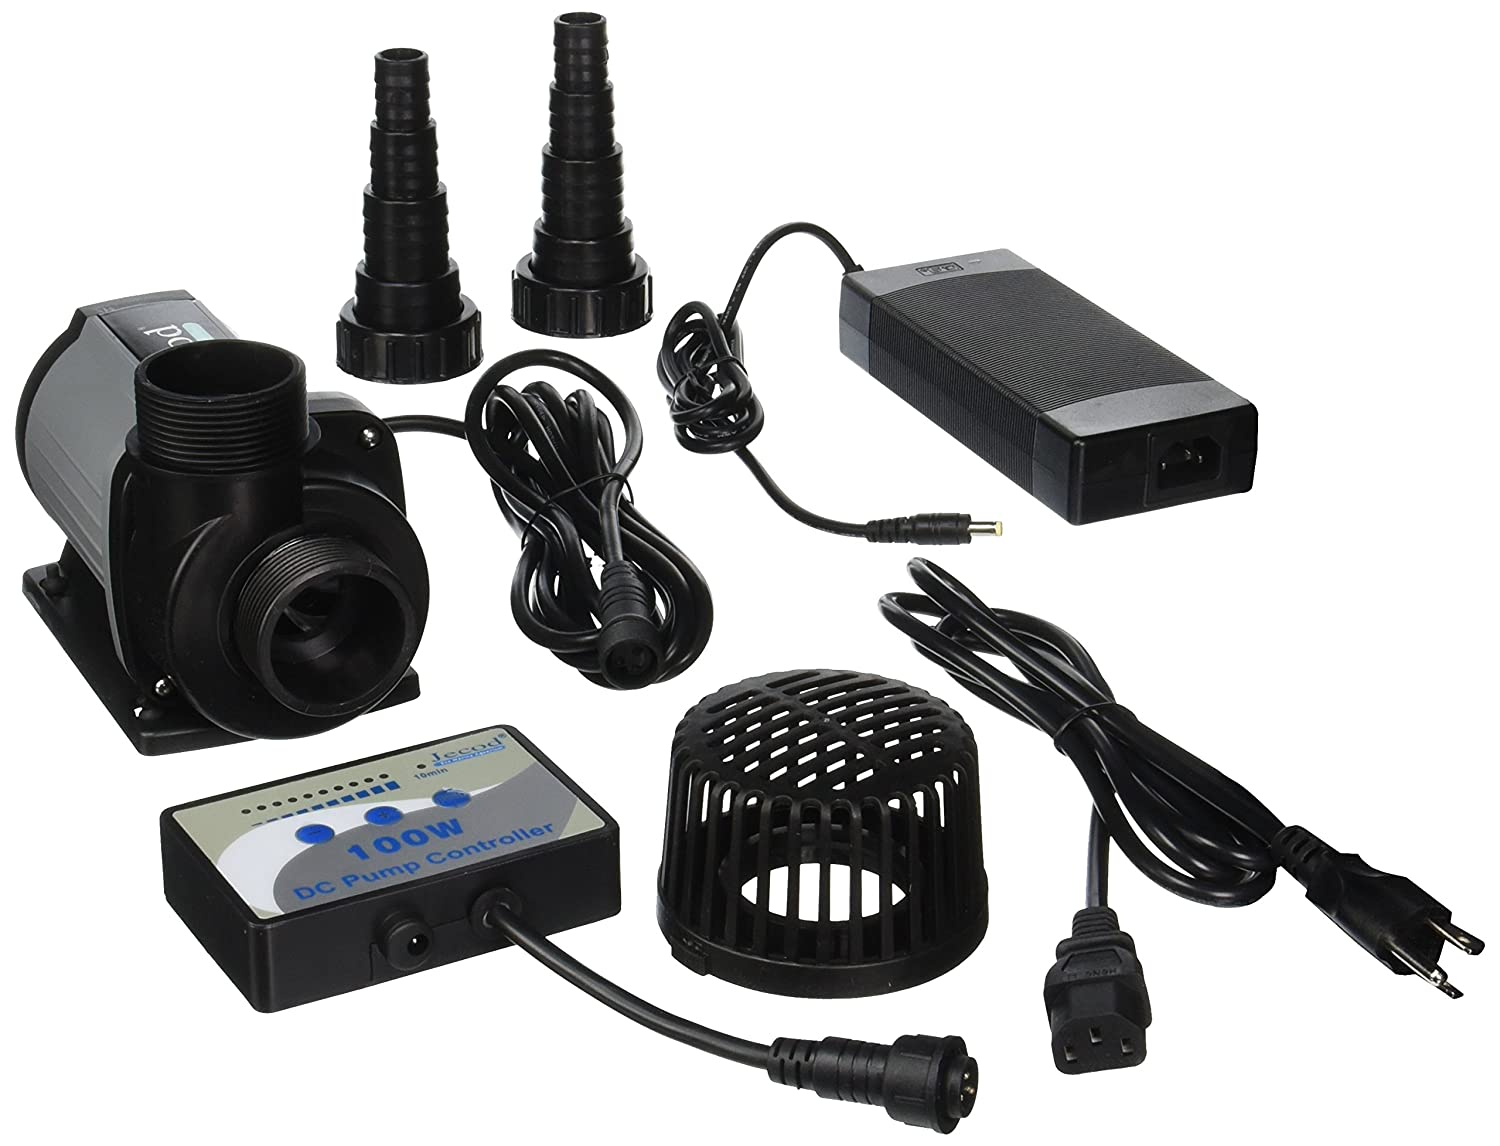 Jebao DCS-12000 3170GPH Submersible Pump with Controller